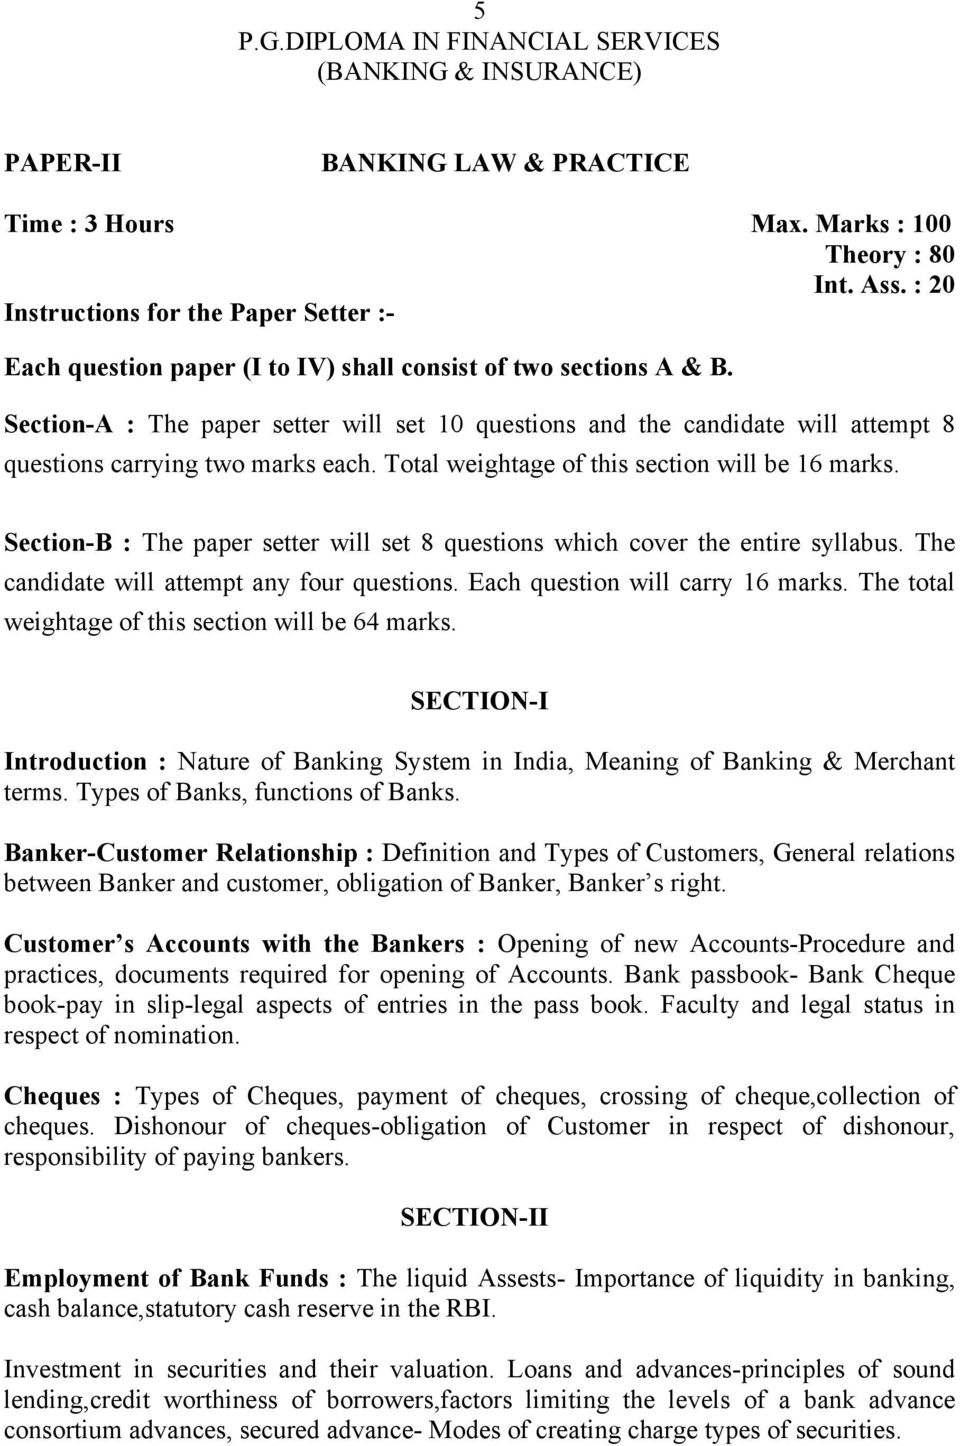 Section-B : The paper setter will set 8 questions which cover the entire syllabus. The candidate will attempt any four questions. Each question will carry 16 marks.